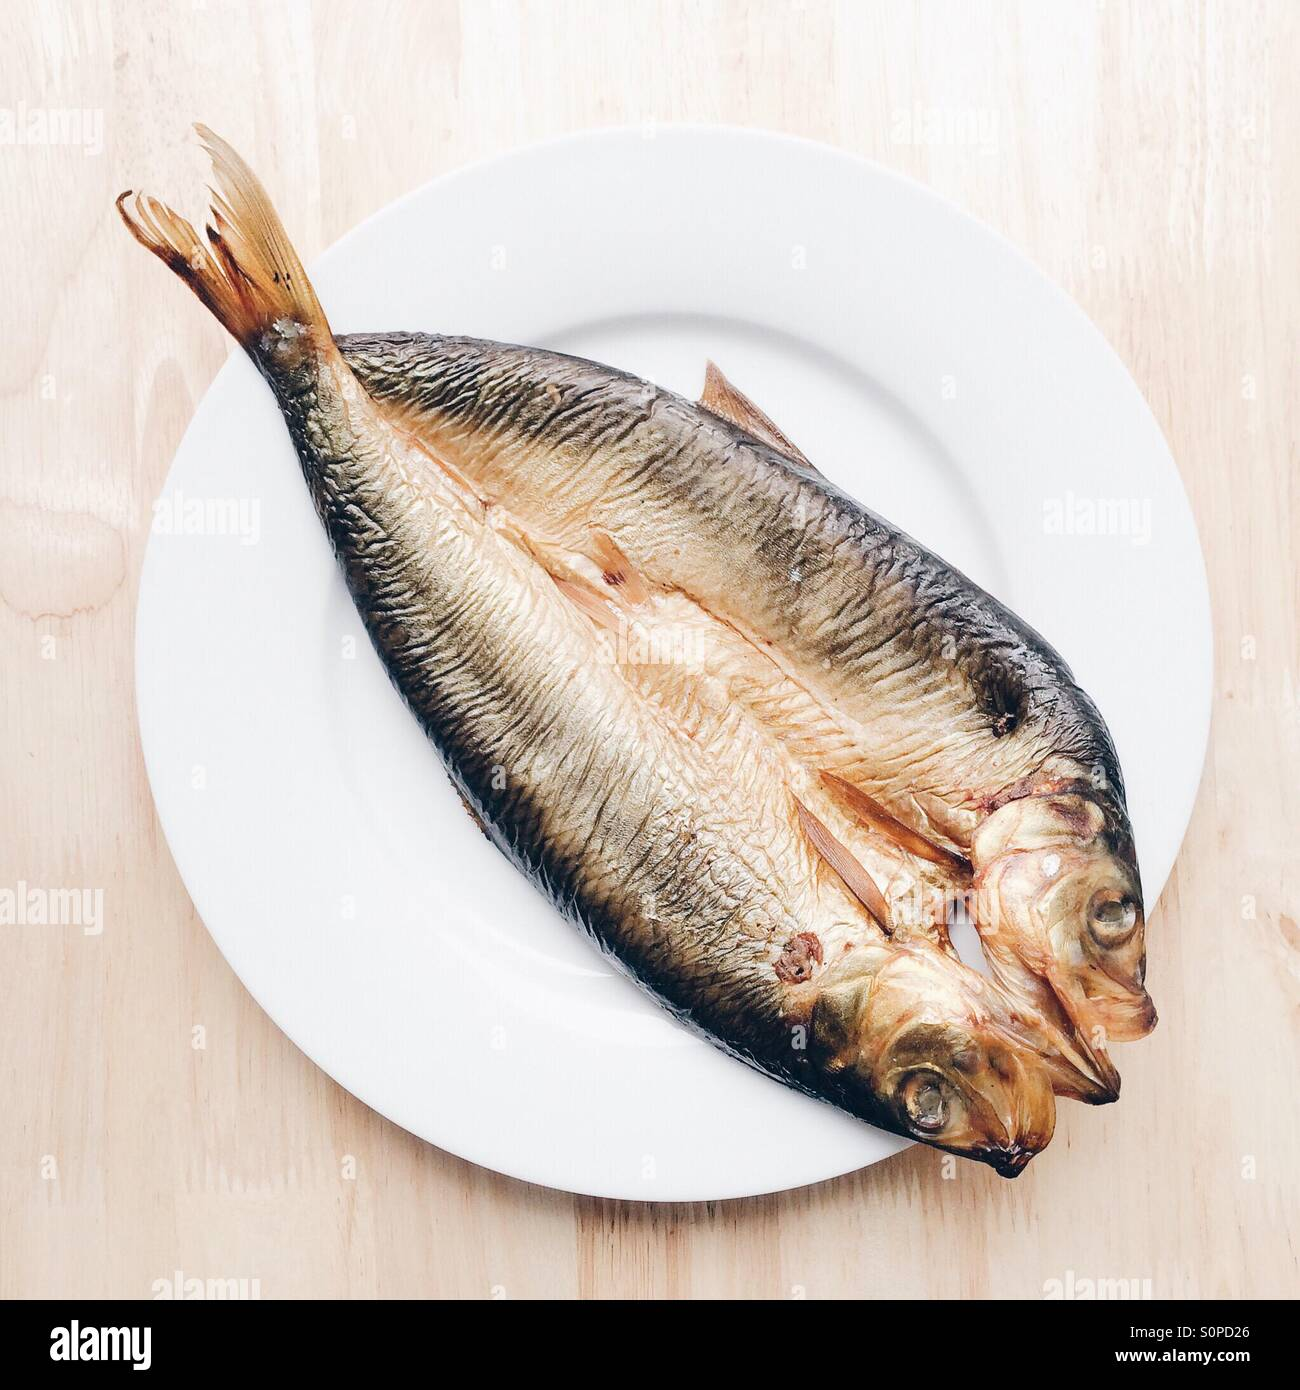 Uncooked raw Kipper on white plate - Stock Image